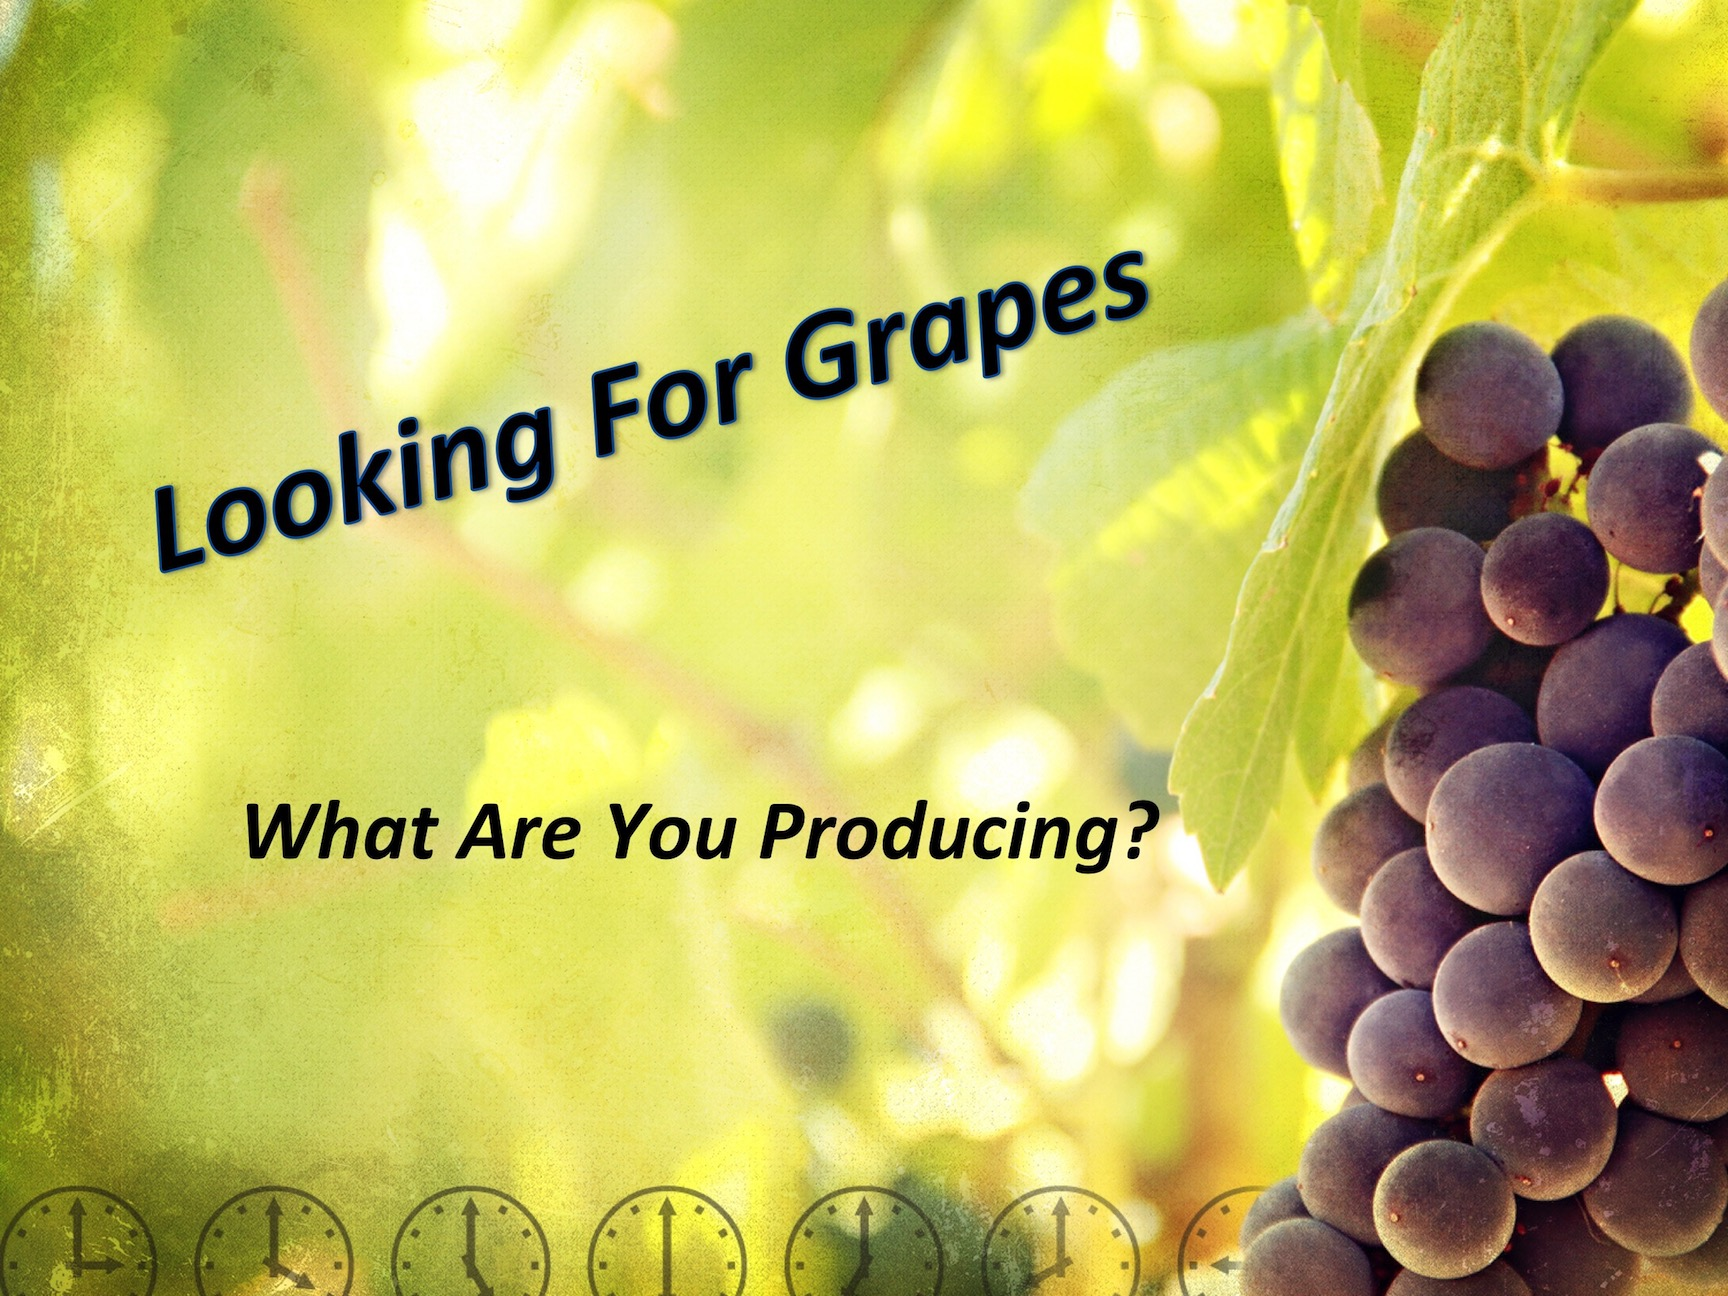 Looking For Grapes P2 6/22/2017 11 AM